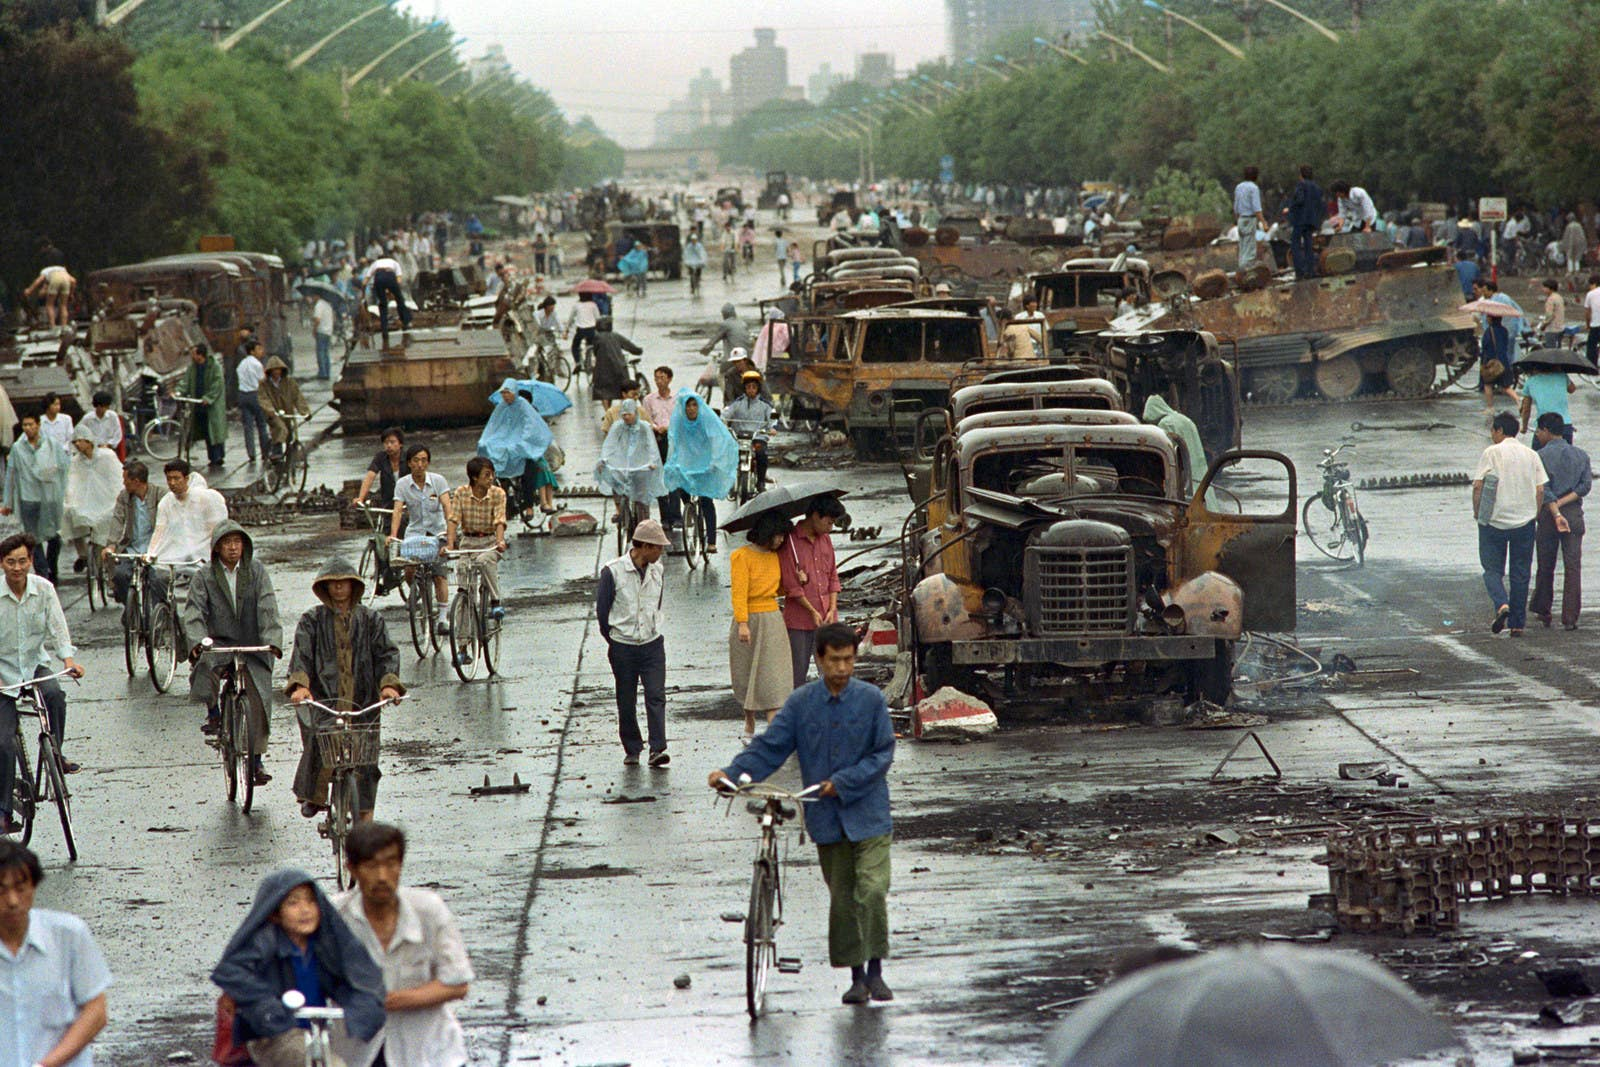 Beijing citizens walking through Tiananmen Square in the aftermath of the riots.